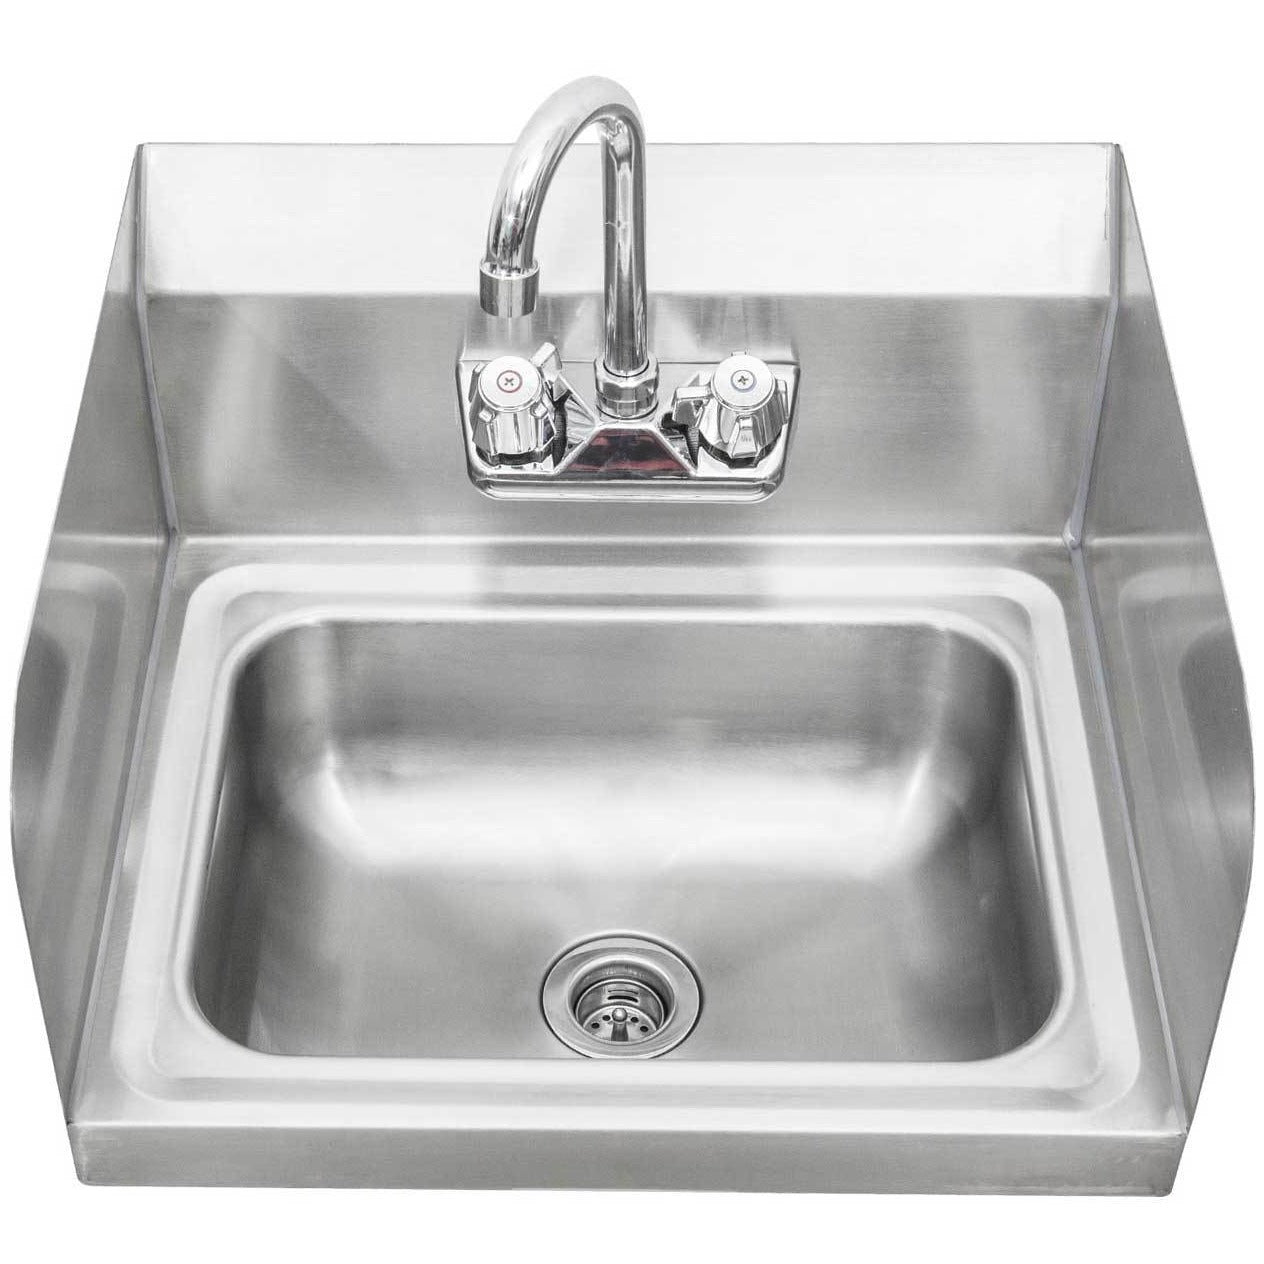 Stainless Steel Wall Mount Hand Sink With Faucet U0026 Drain U0026 Side Splashu2013 AT  Faucet